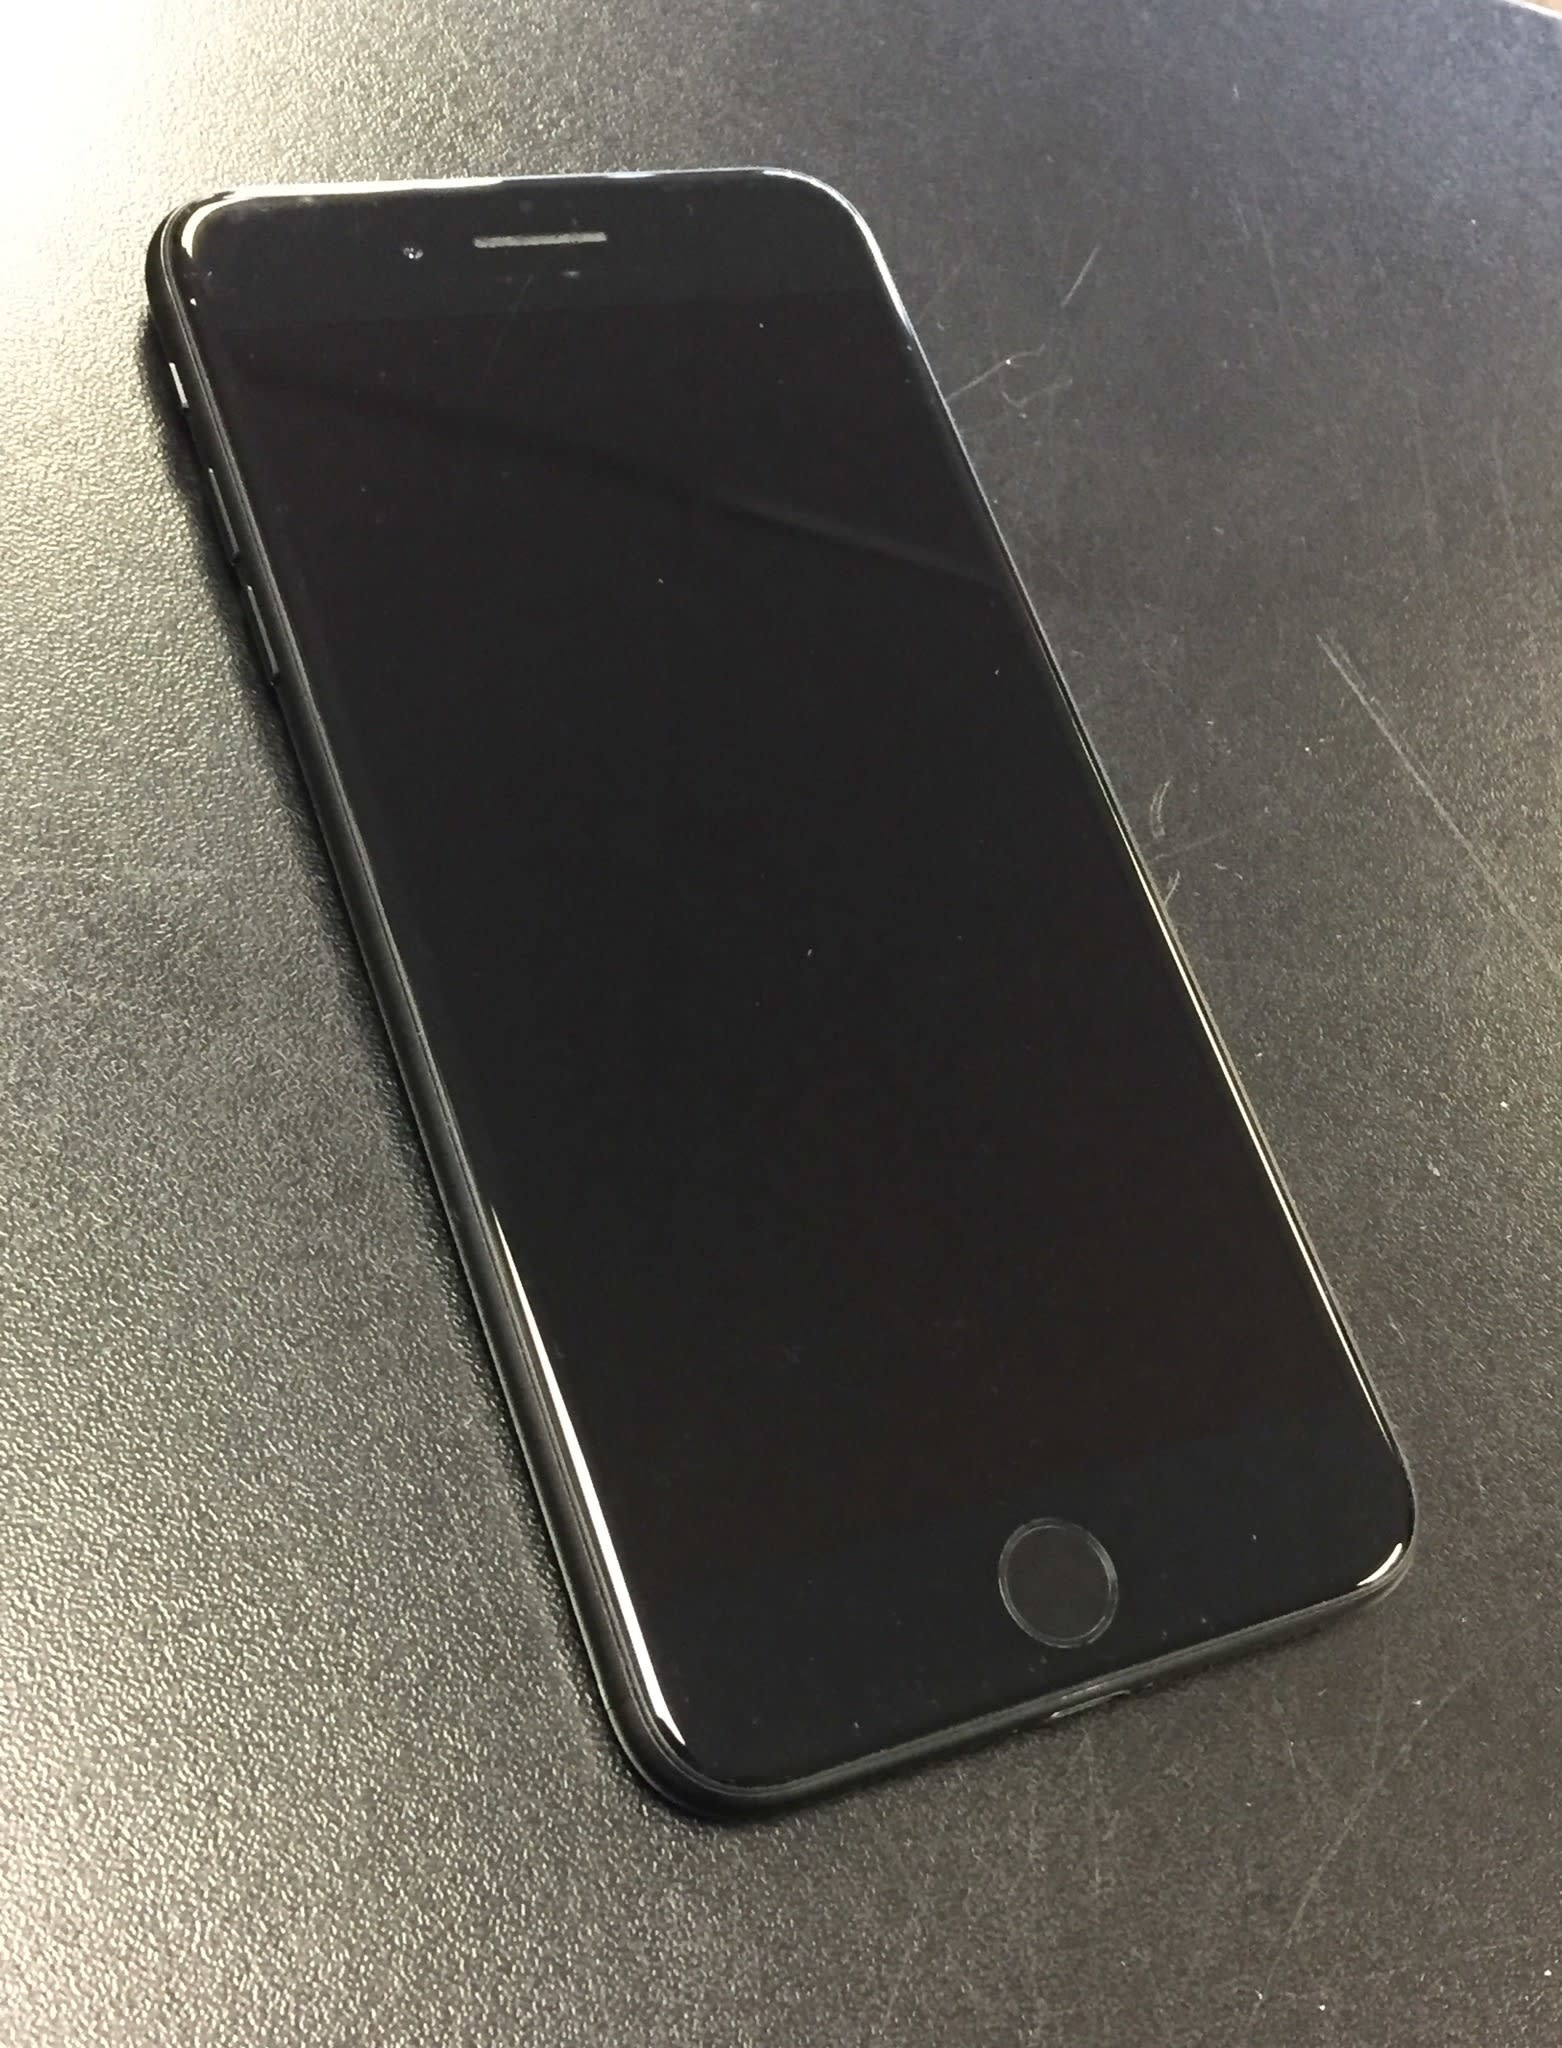 AT&T/Cricket Only - iPhone 7 Plus - 128GB - Jet Black - Fair Condition